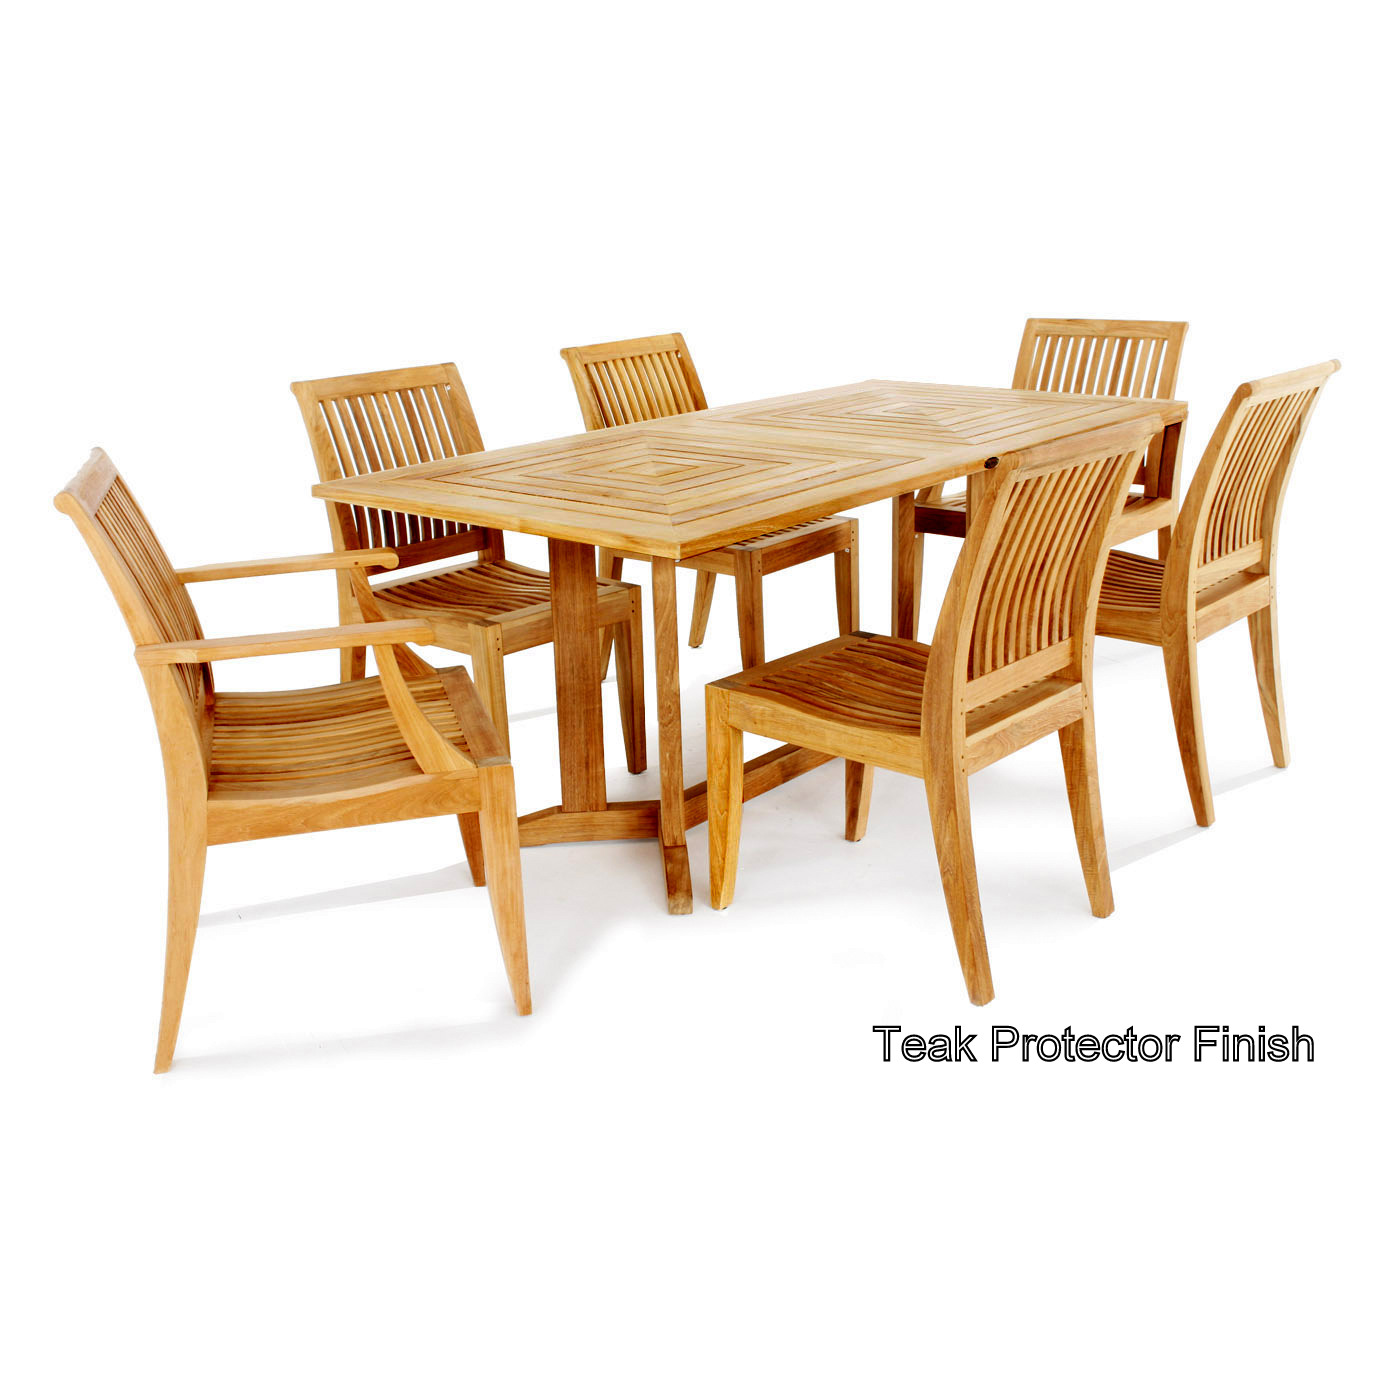 Laguna Teak Wood Dining Chair with Arms Westminster Teak  : 70293 Pyramid Outdoor Teak Dining Chairs Set from www.westminsterteak.com size 1400 x 1400 jpeg 238kB